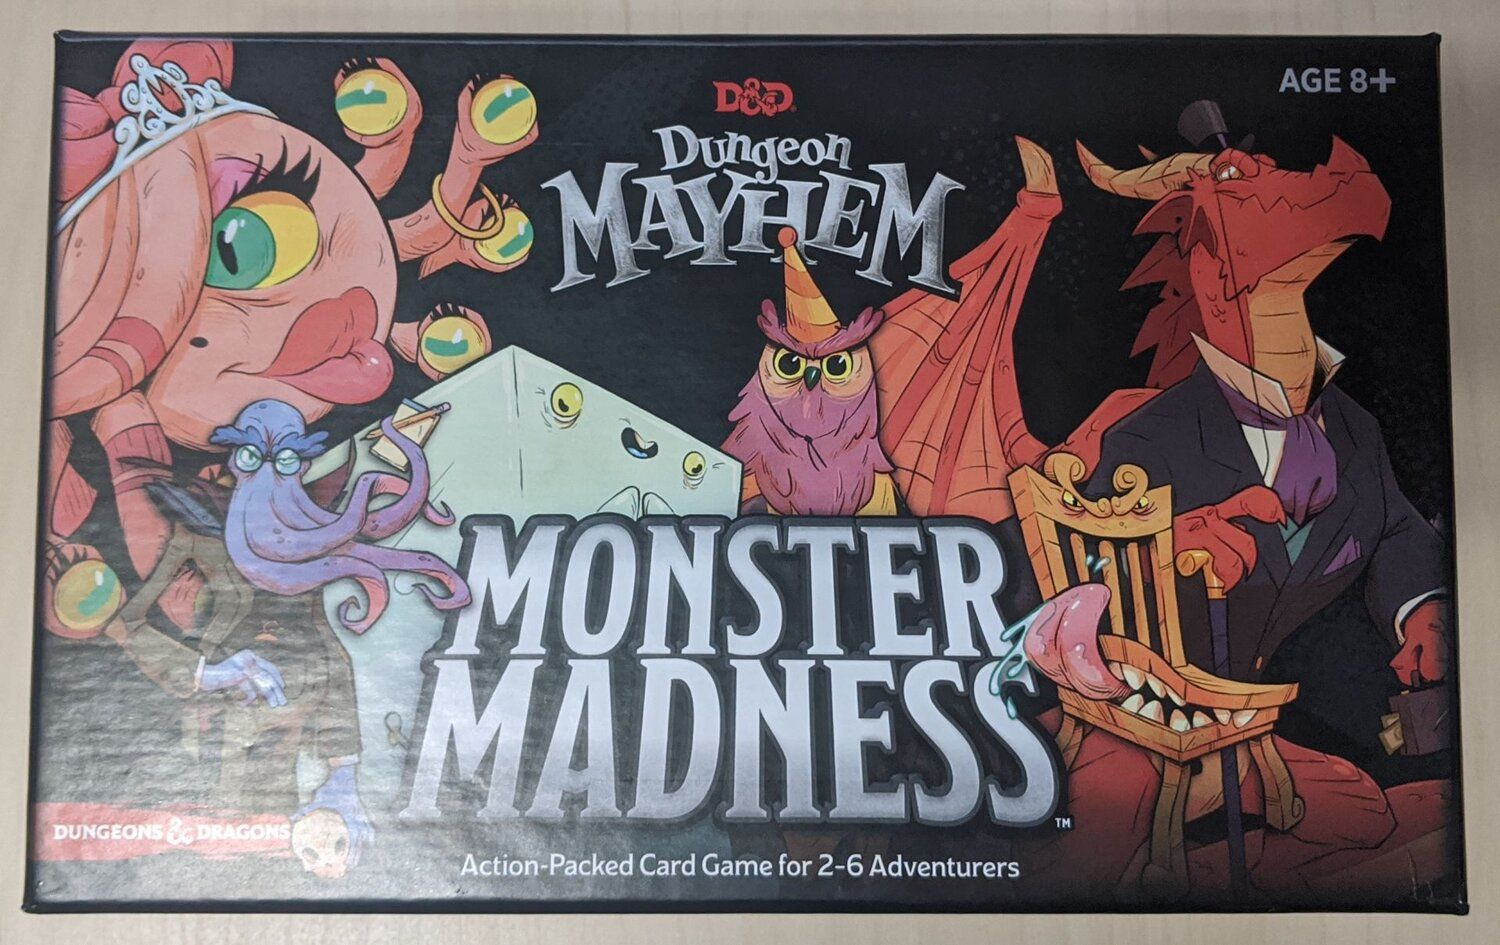 MONSTER MADNESS est une extension incroyable pour DUNGEON MAYHEM